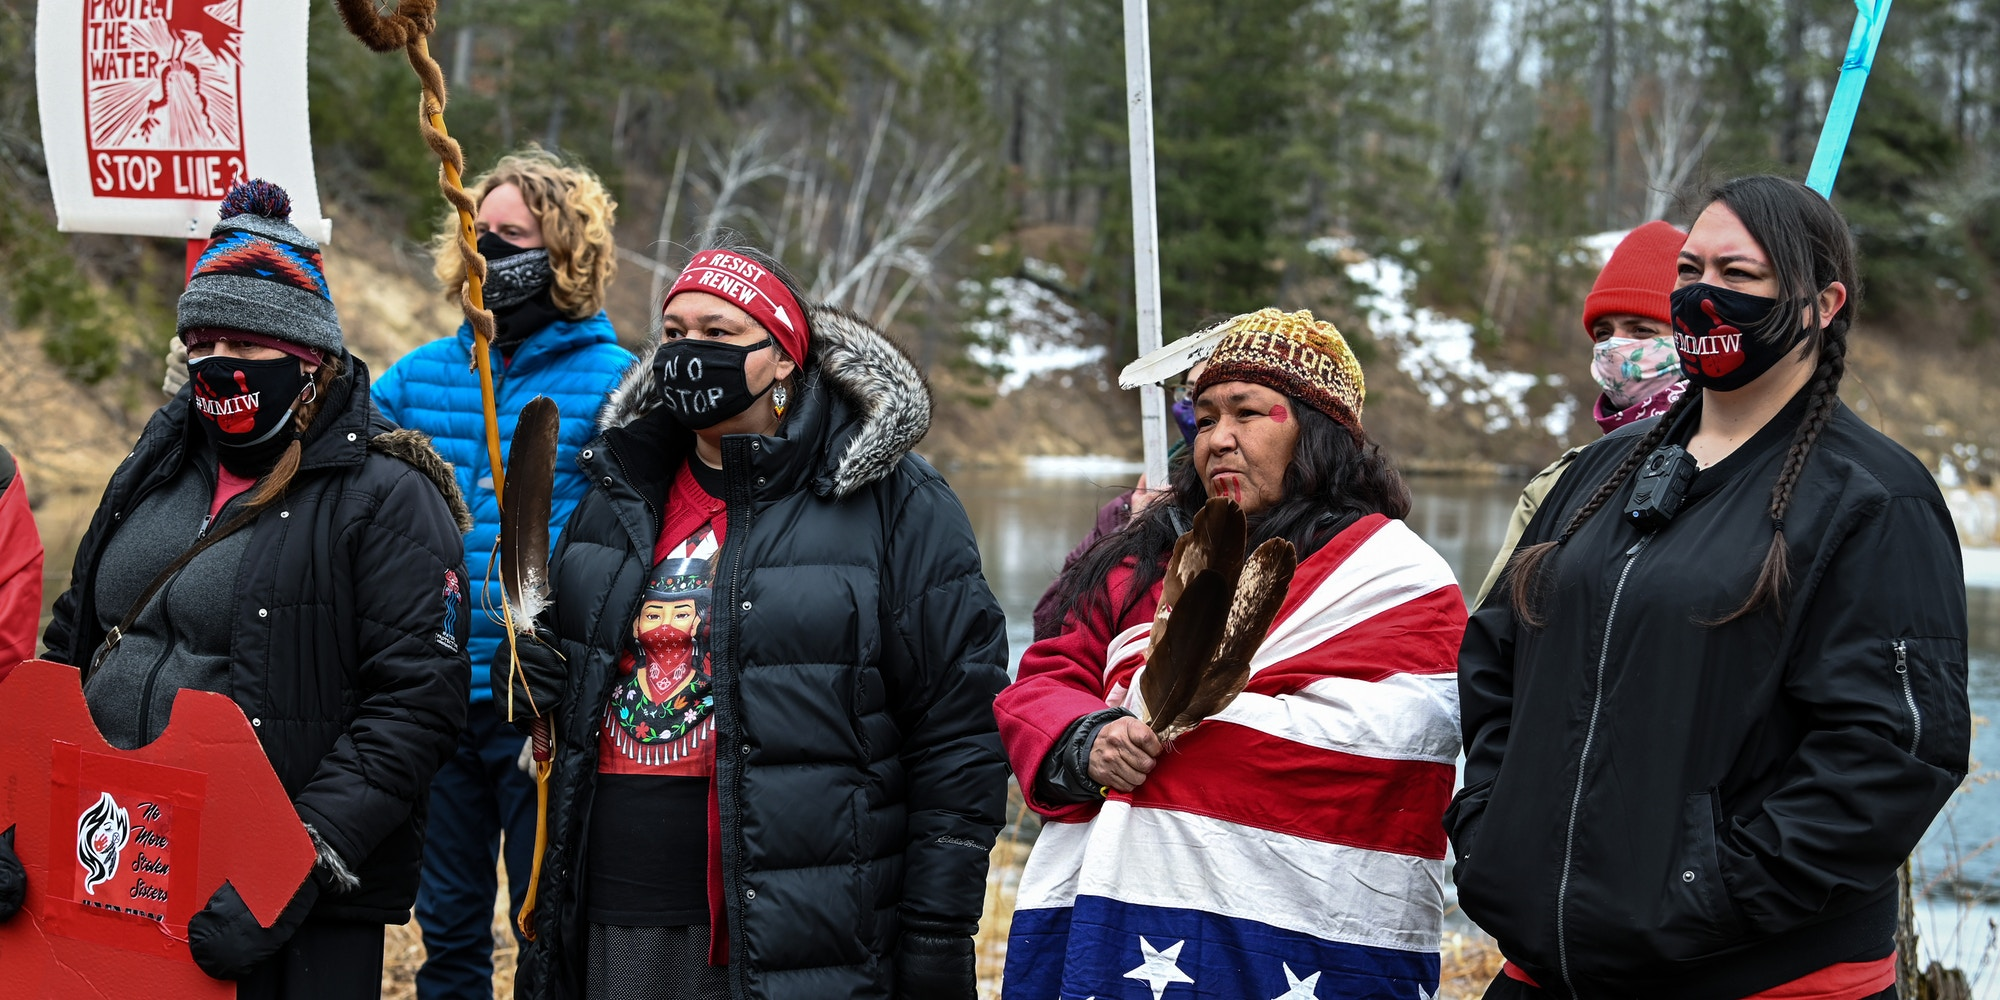 Water protectors rally against the Enbridge Line 3 pipeline in Park Rapids, Minn., on March 15, 2021.